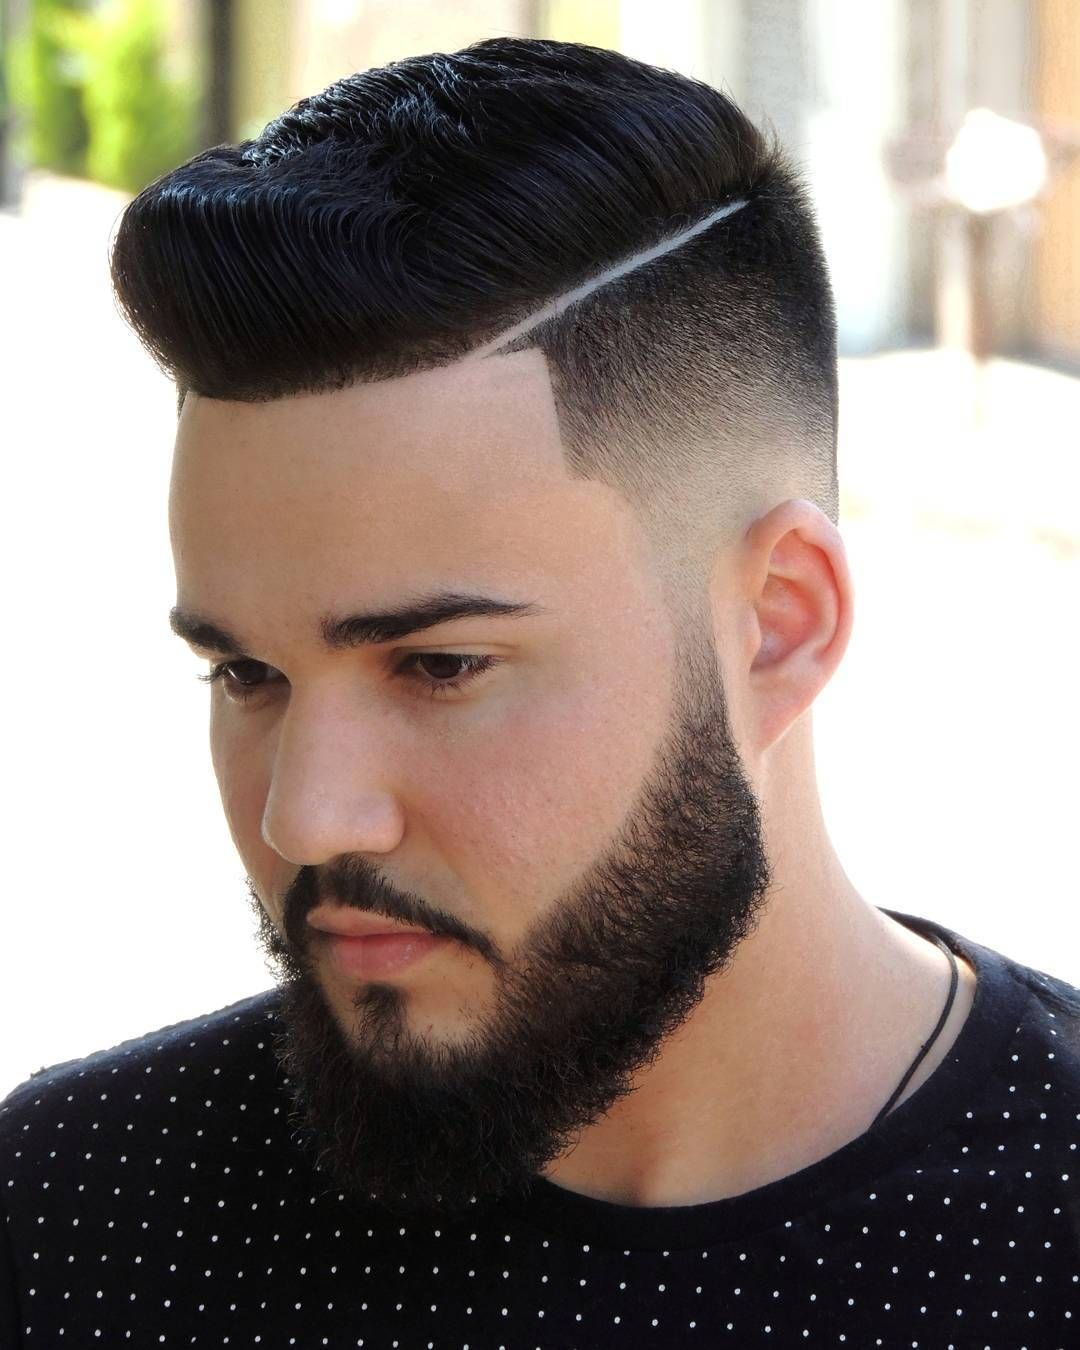 Best Men Hairstyle Haircut New 2018 Latest Men Hairstyles Haircuts For Men Mens Hairstyles